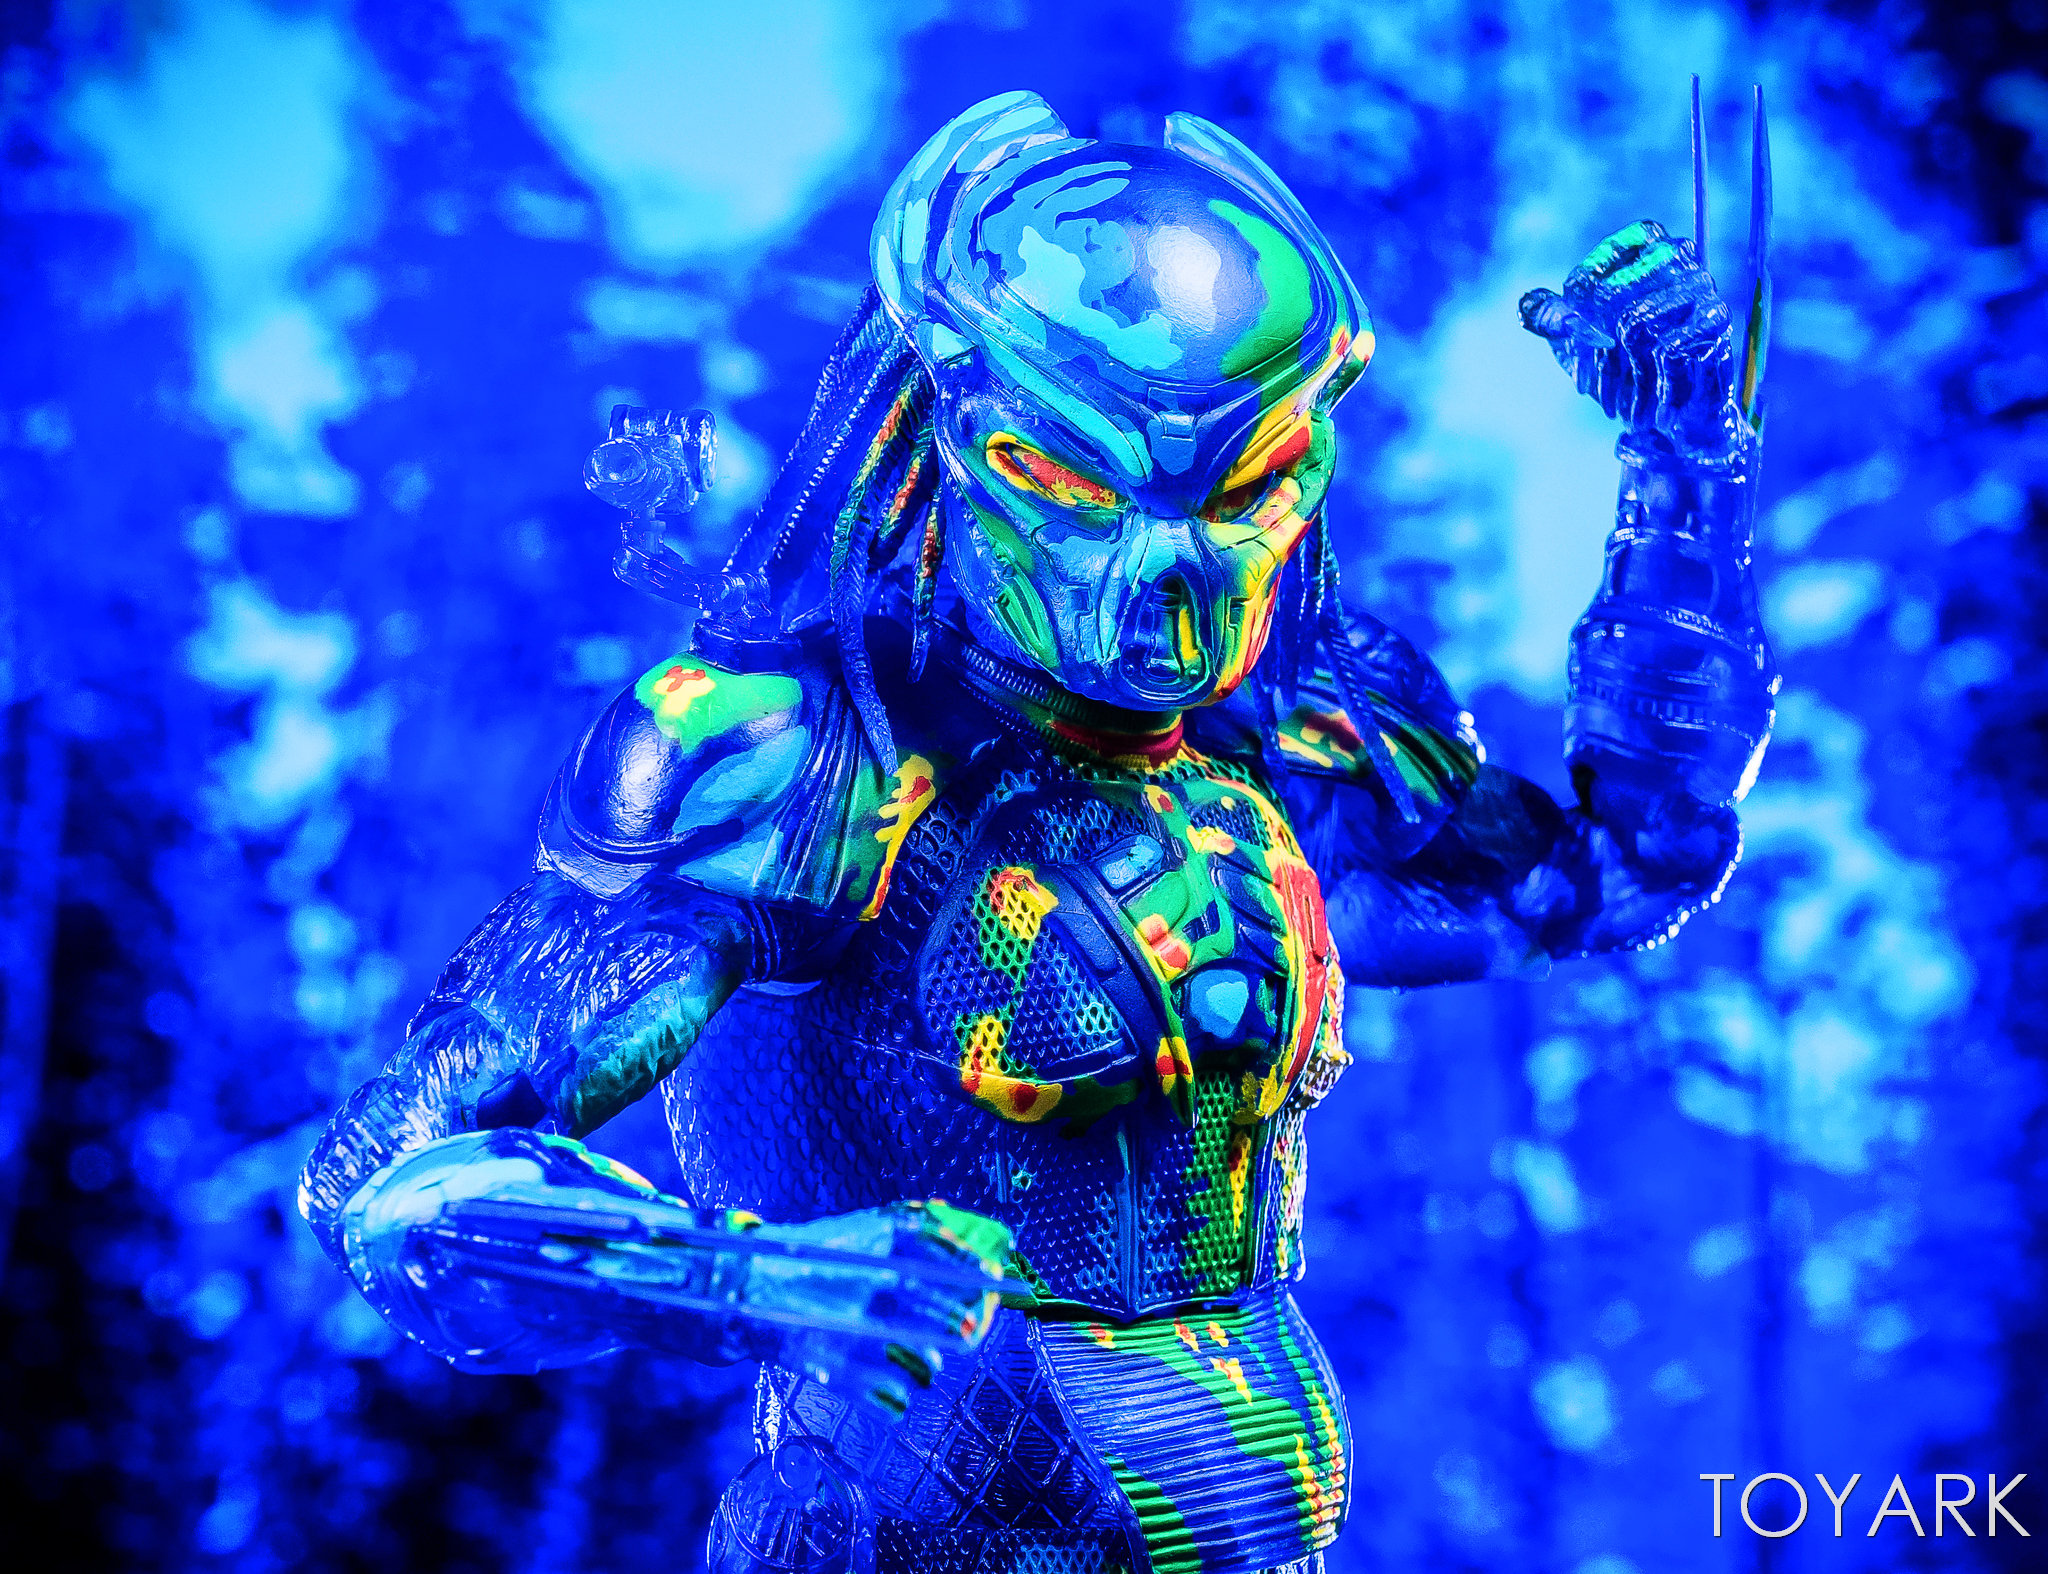 https://news.toyark.com/wp-content/uploads/sites/4/2018/12/NECA-Predator-2018-Thermal-Vision-Predator-040.jpg